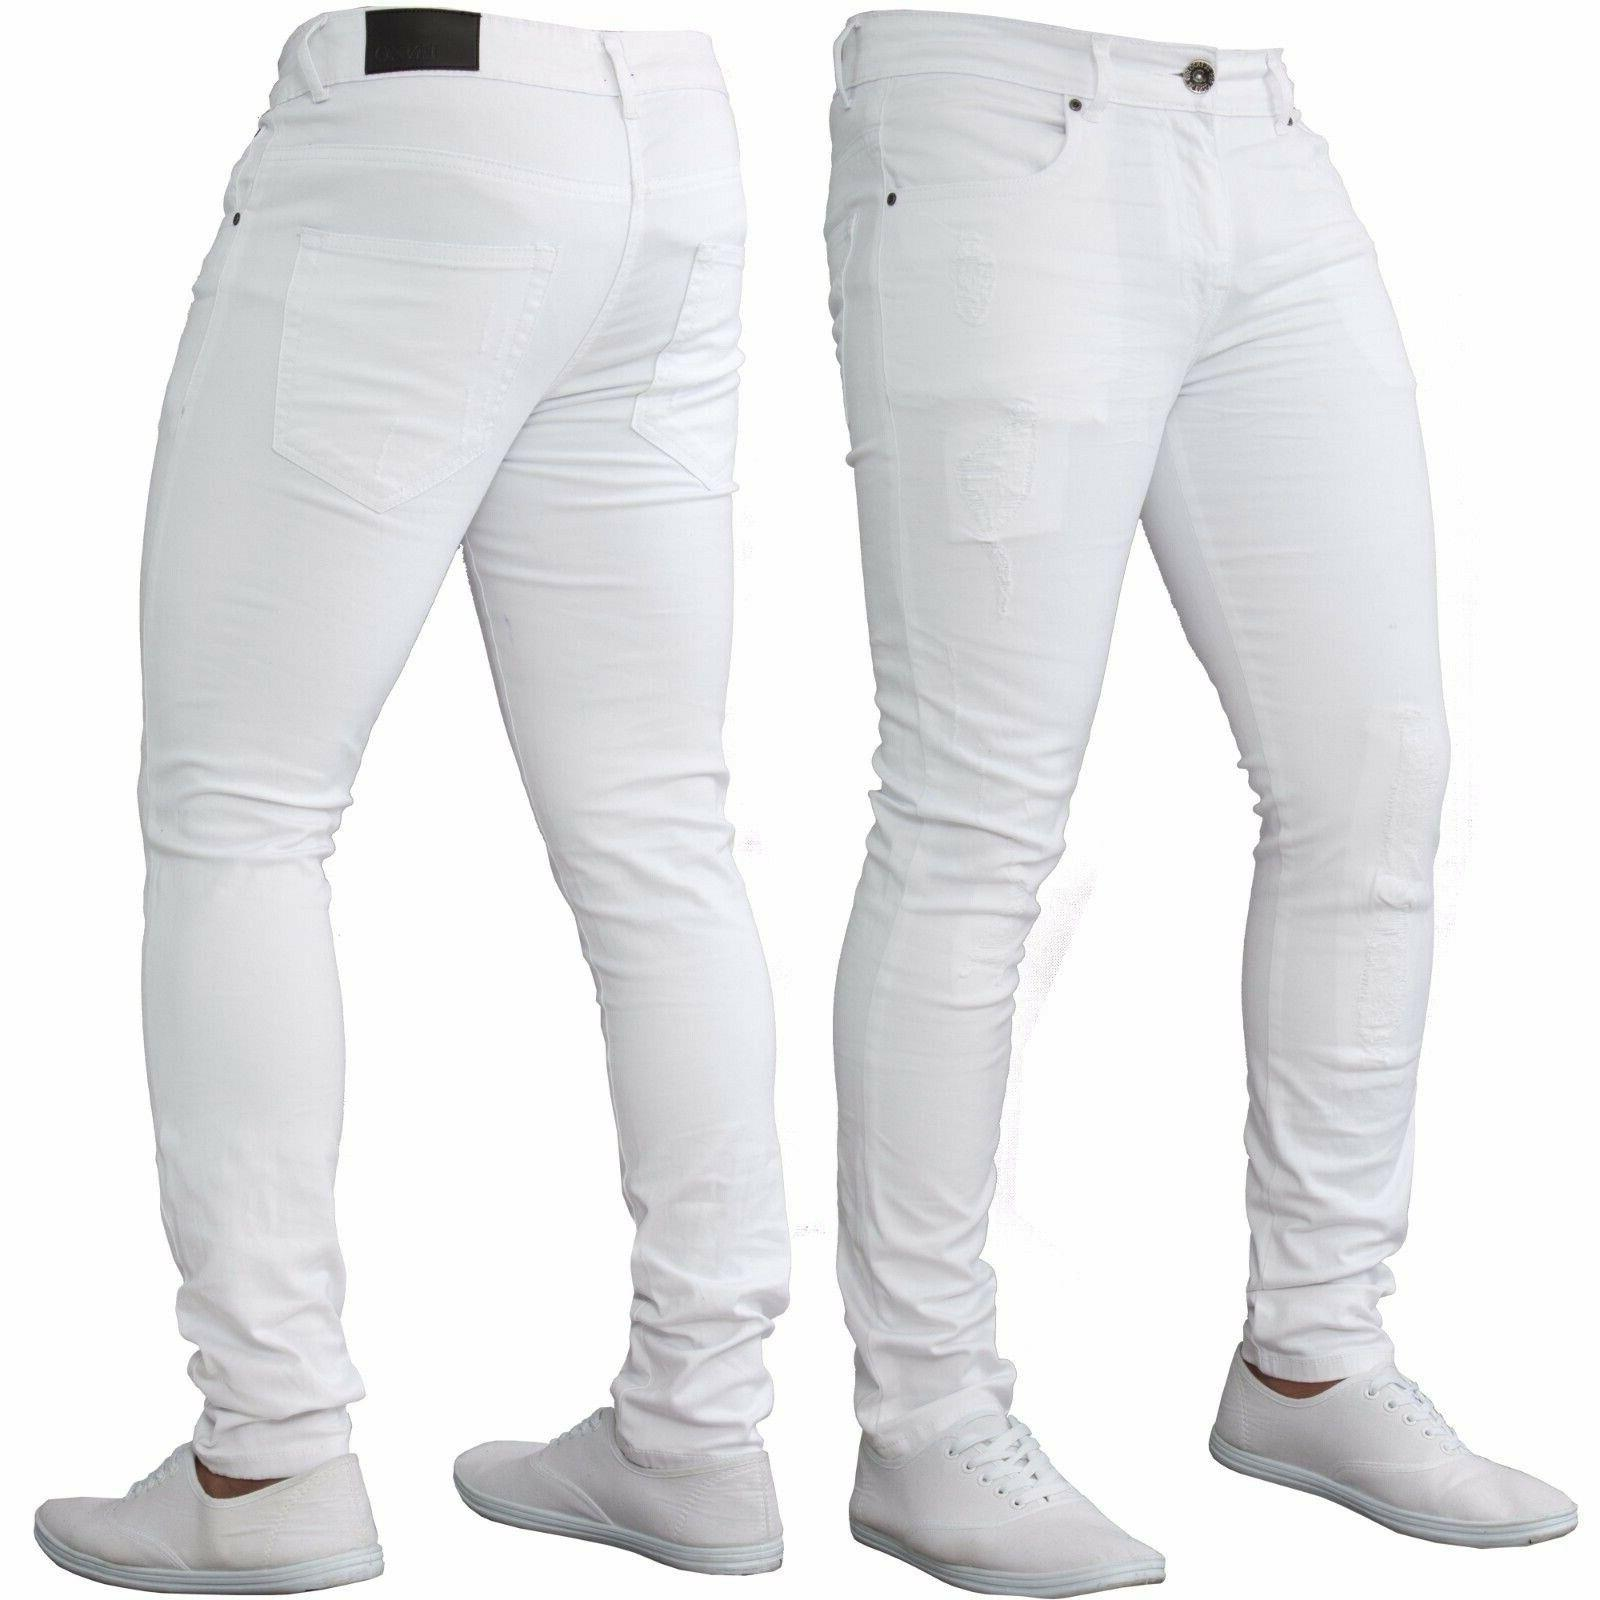 Men's Fashion Stretch Pipped Skinny Jeans Fitness